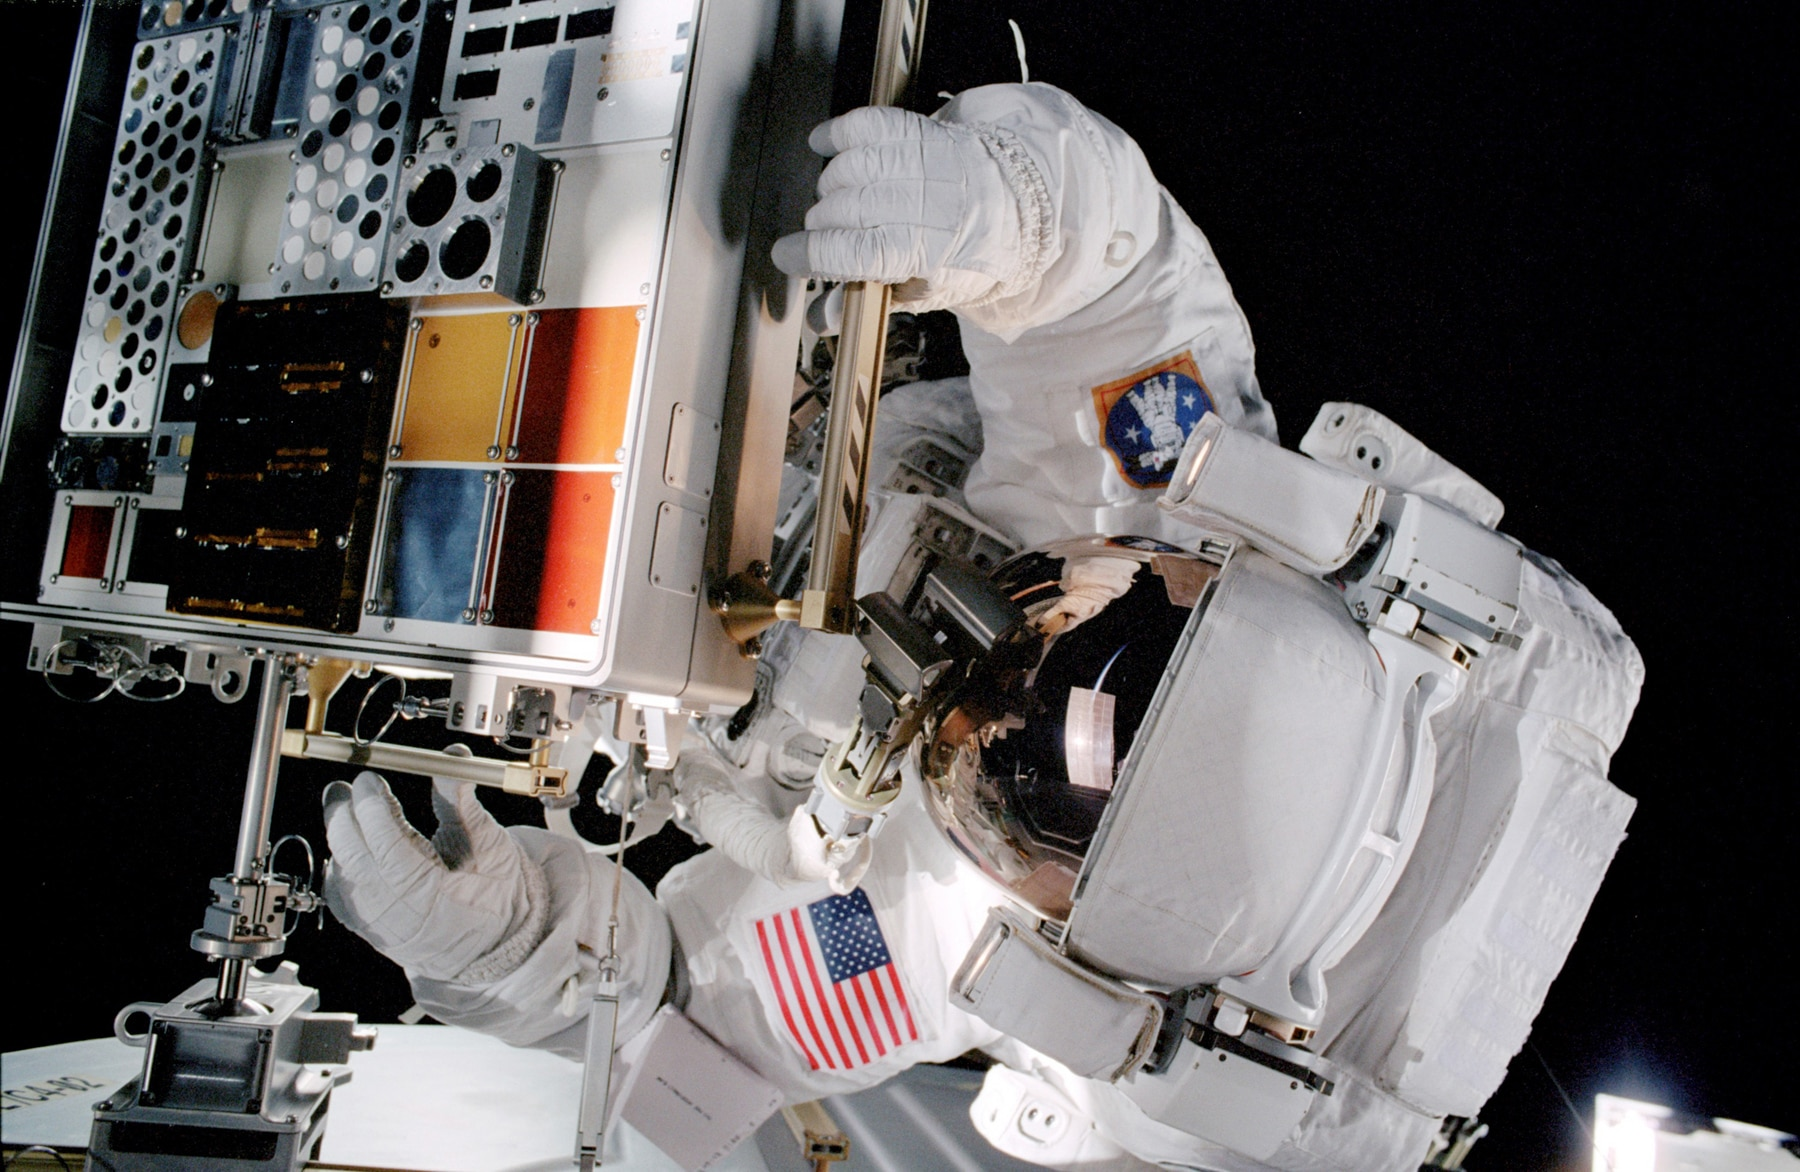 Astronaut working on equipment in space (NASA)